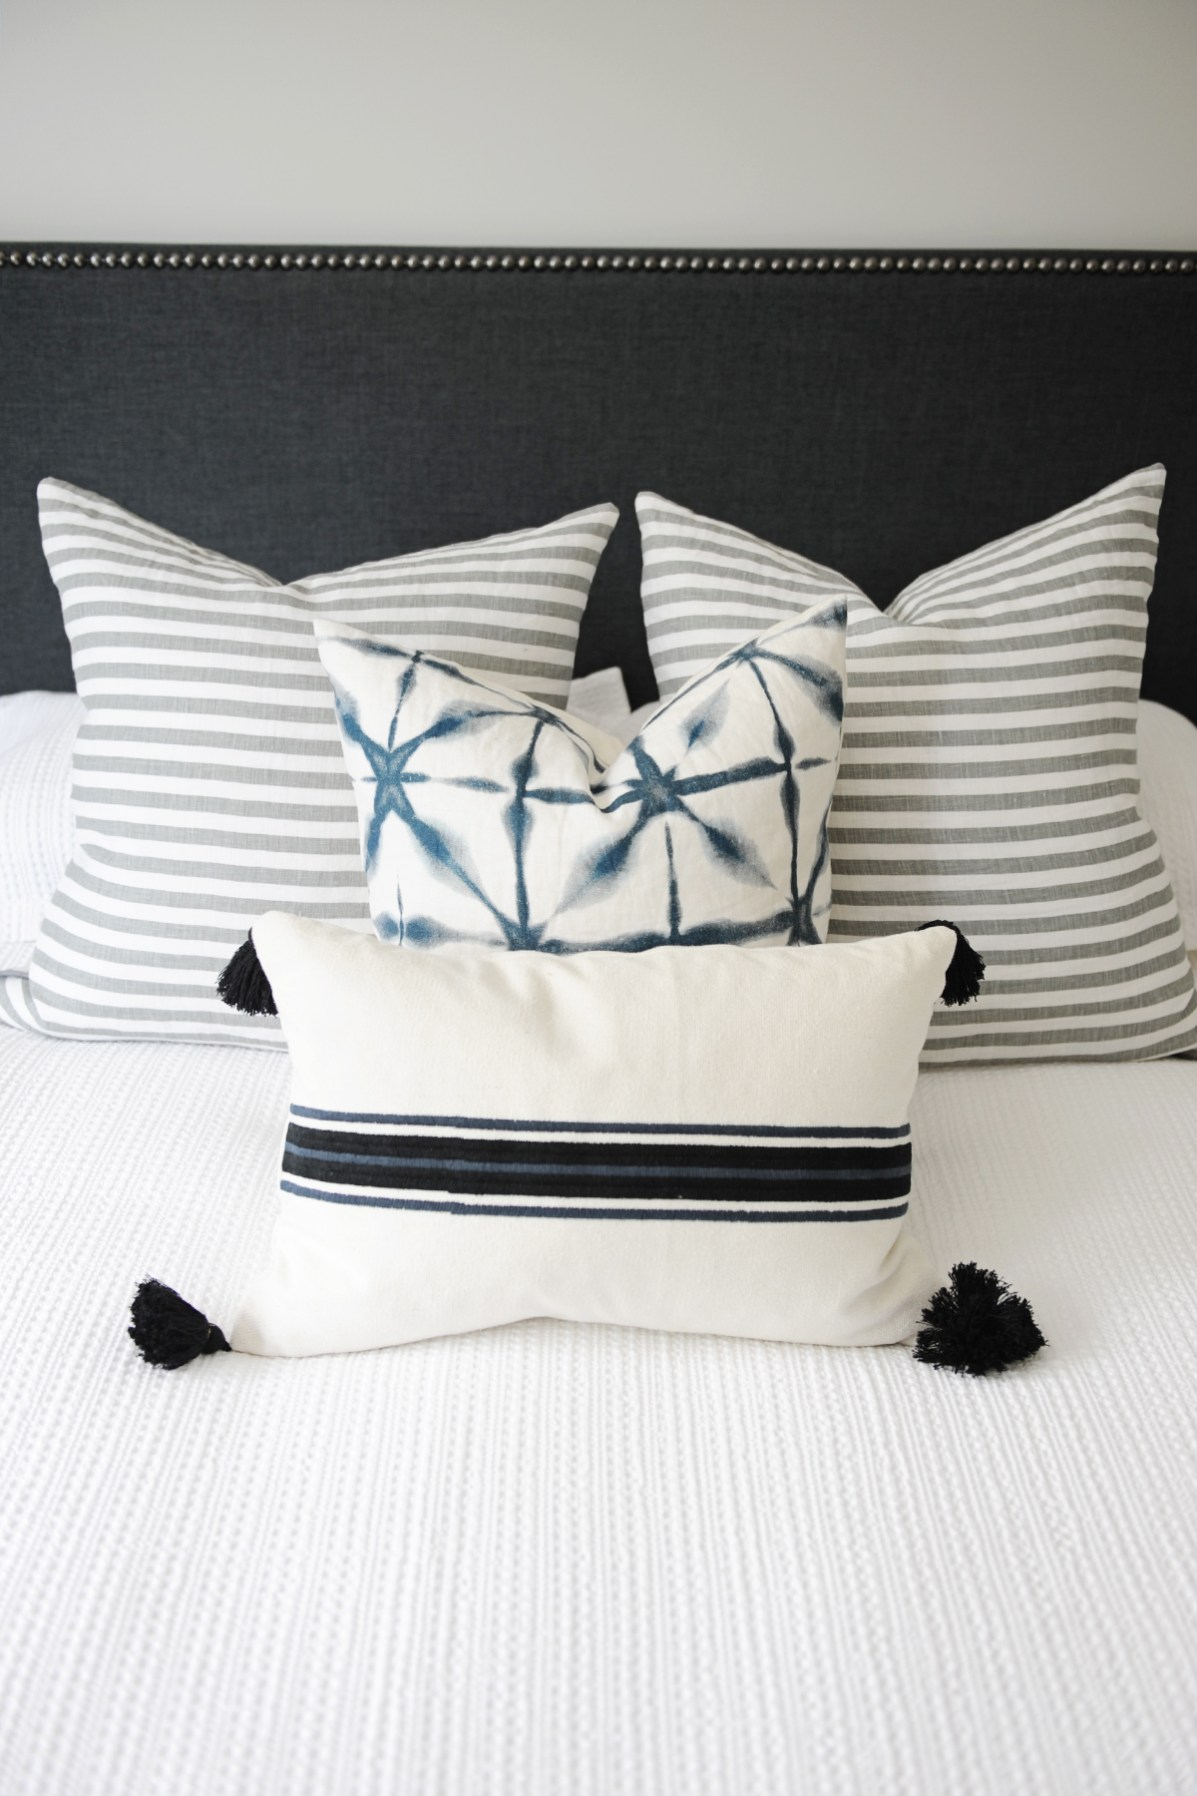 Step 2 Guest Room Must Haves- Tips for Creating the Ultimate Guest Room